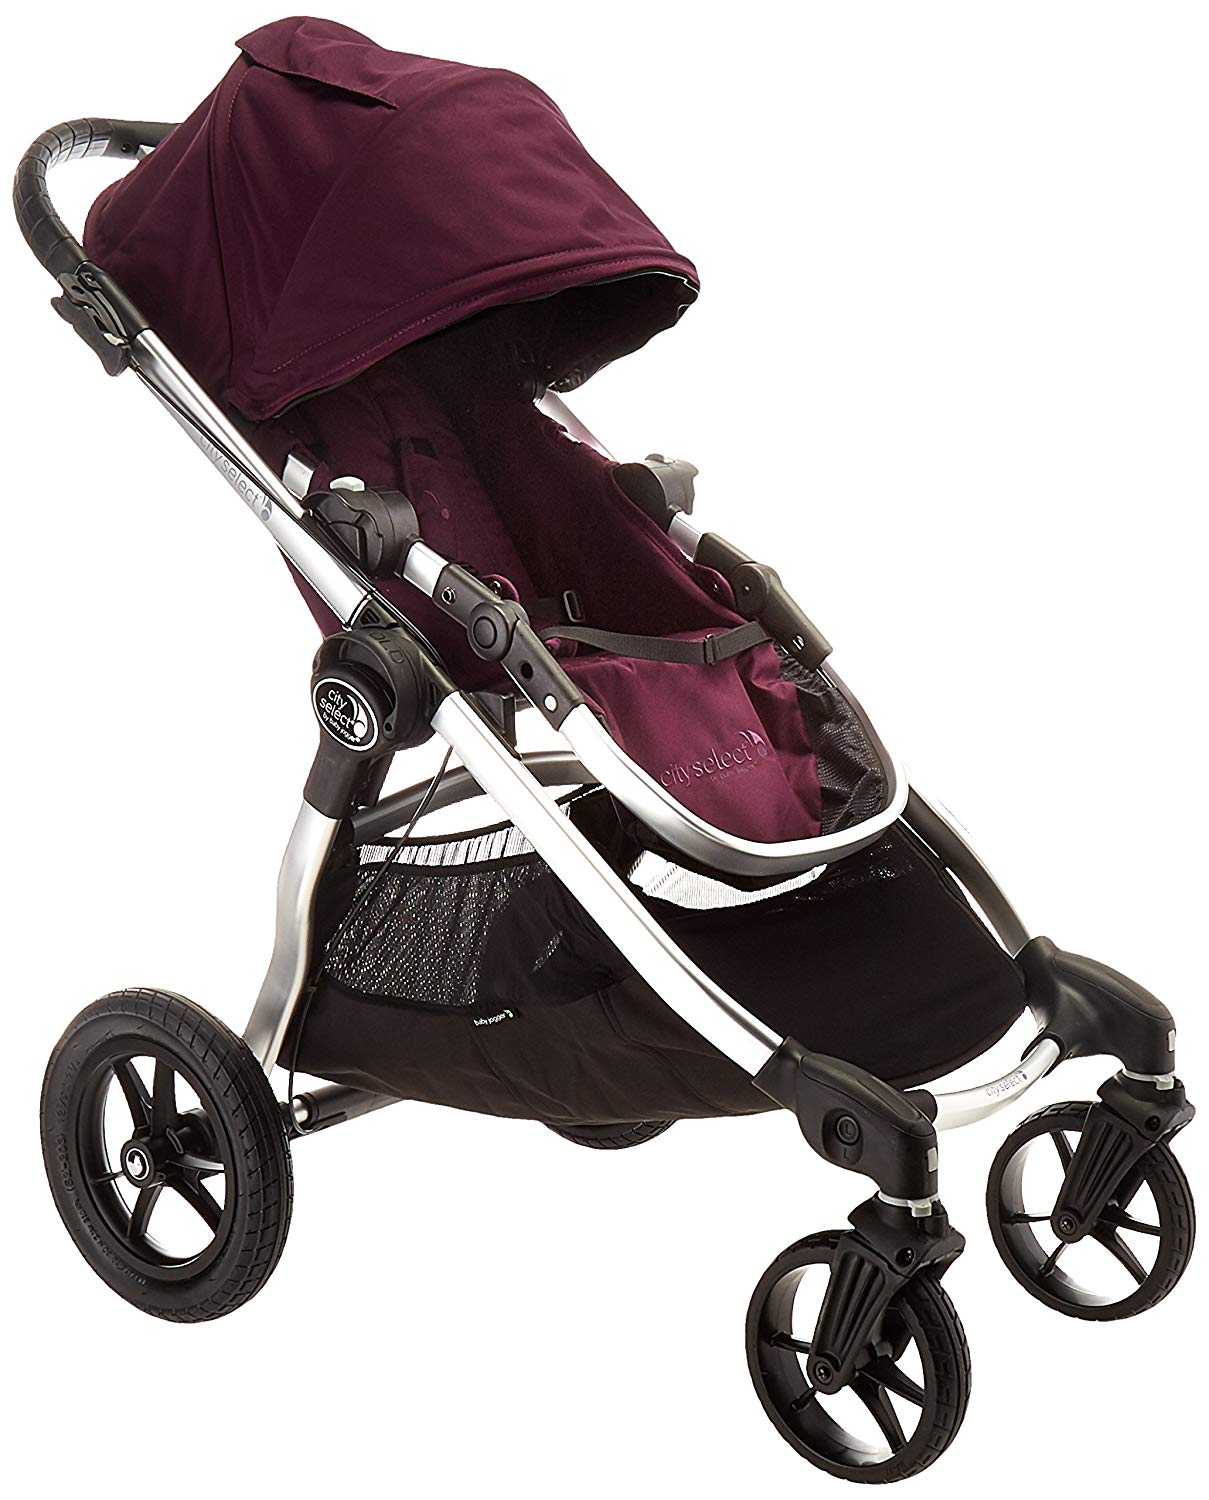 Baby Jogger City Select Stroller only $252.73! (was $372)